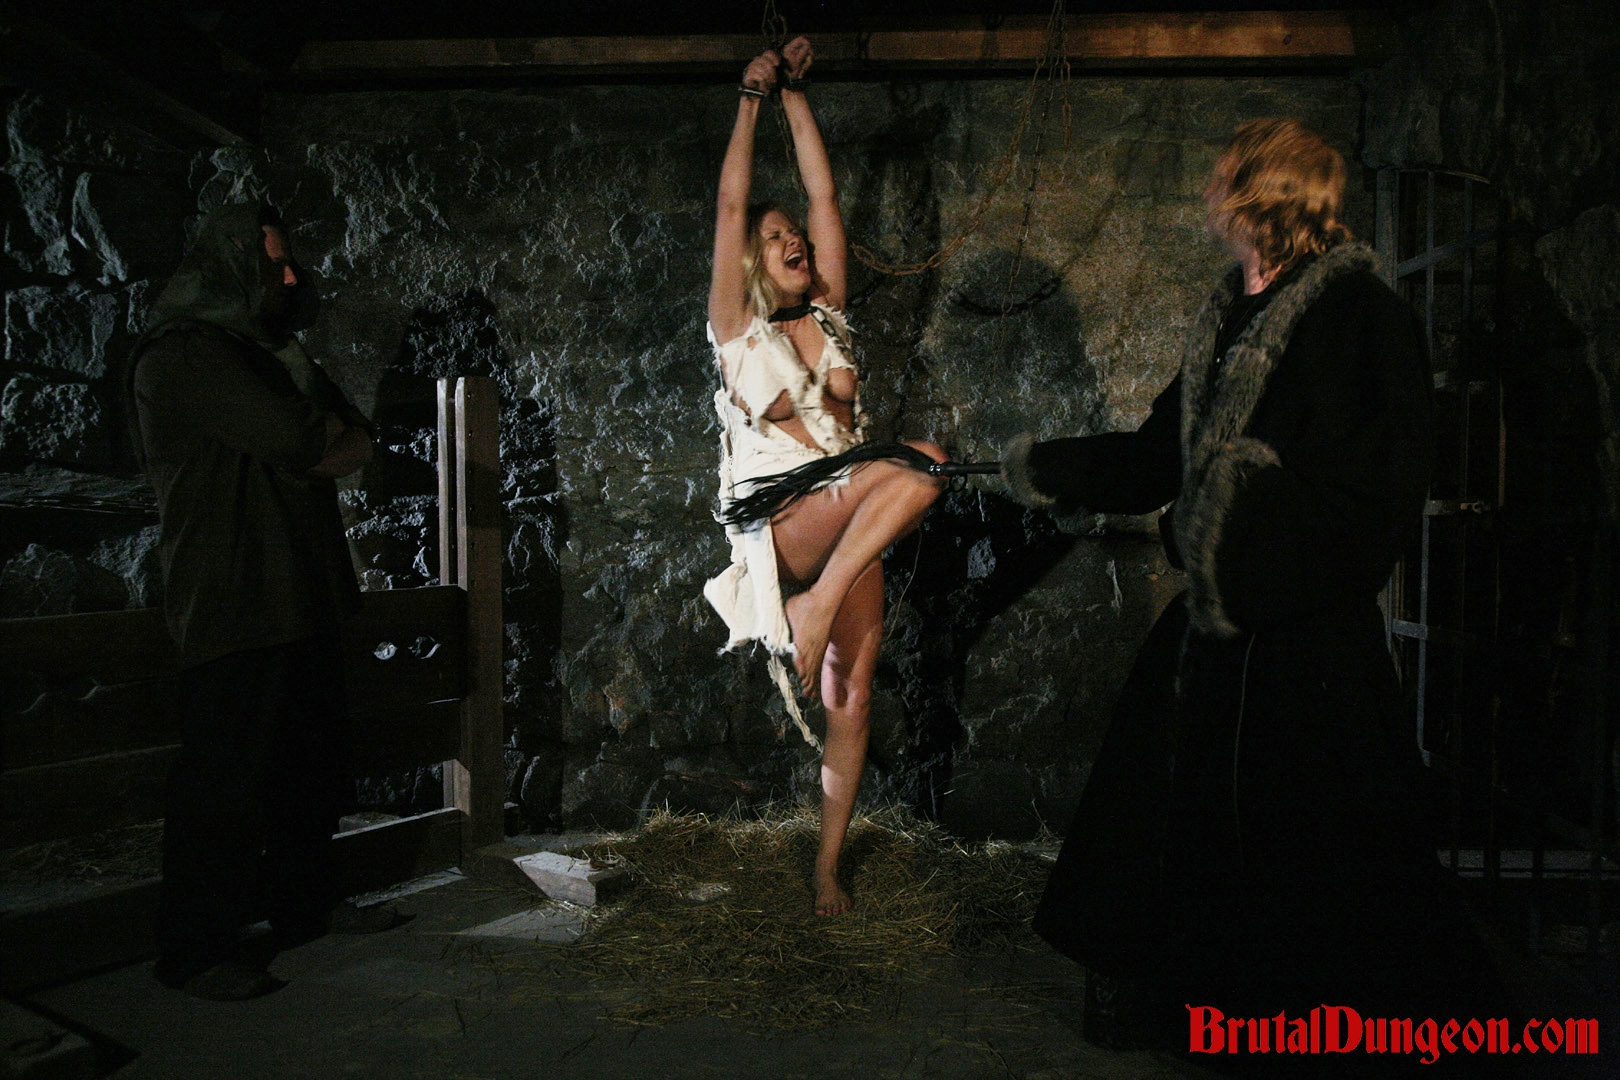 Blonde magda imprisoned bdsm gangbang. Hot blonde Magda has been arrested and punished once a day for prostitution. She didn't care if her customers were married or important people in town. In our dungeon, she must endure imprisonment, BDSM fun, bondage with leather and chains, gang bang, flogging, spanking, slapping, fingering, breast, nipple and cunt torment. She begs for forgiveness!